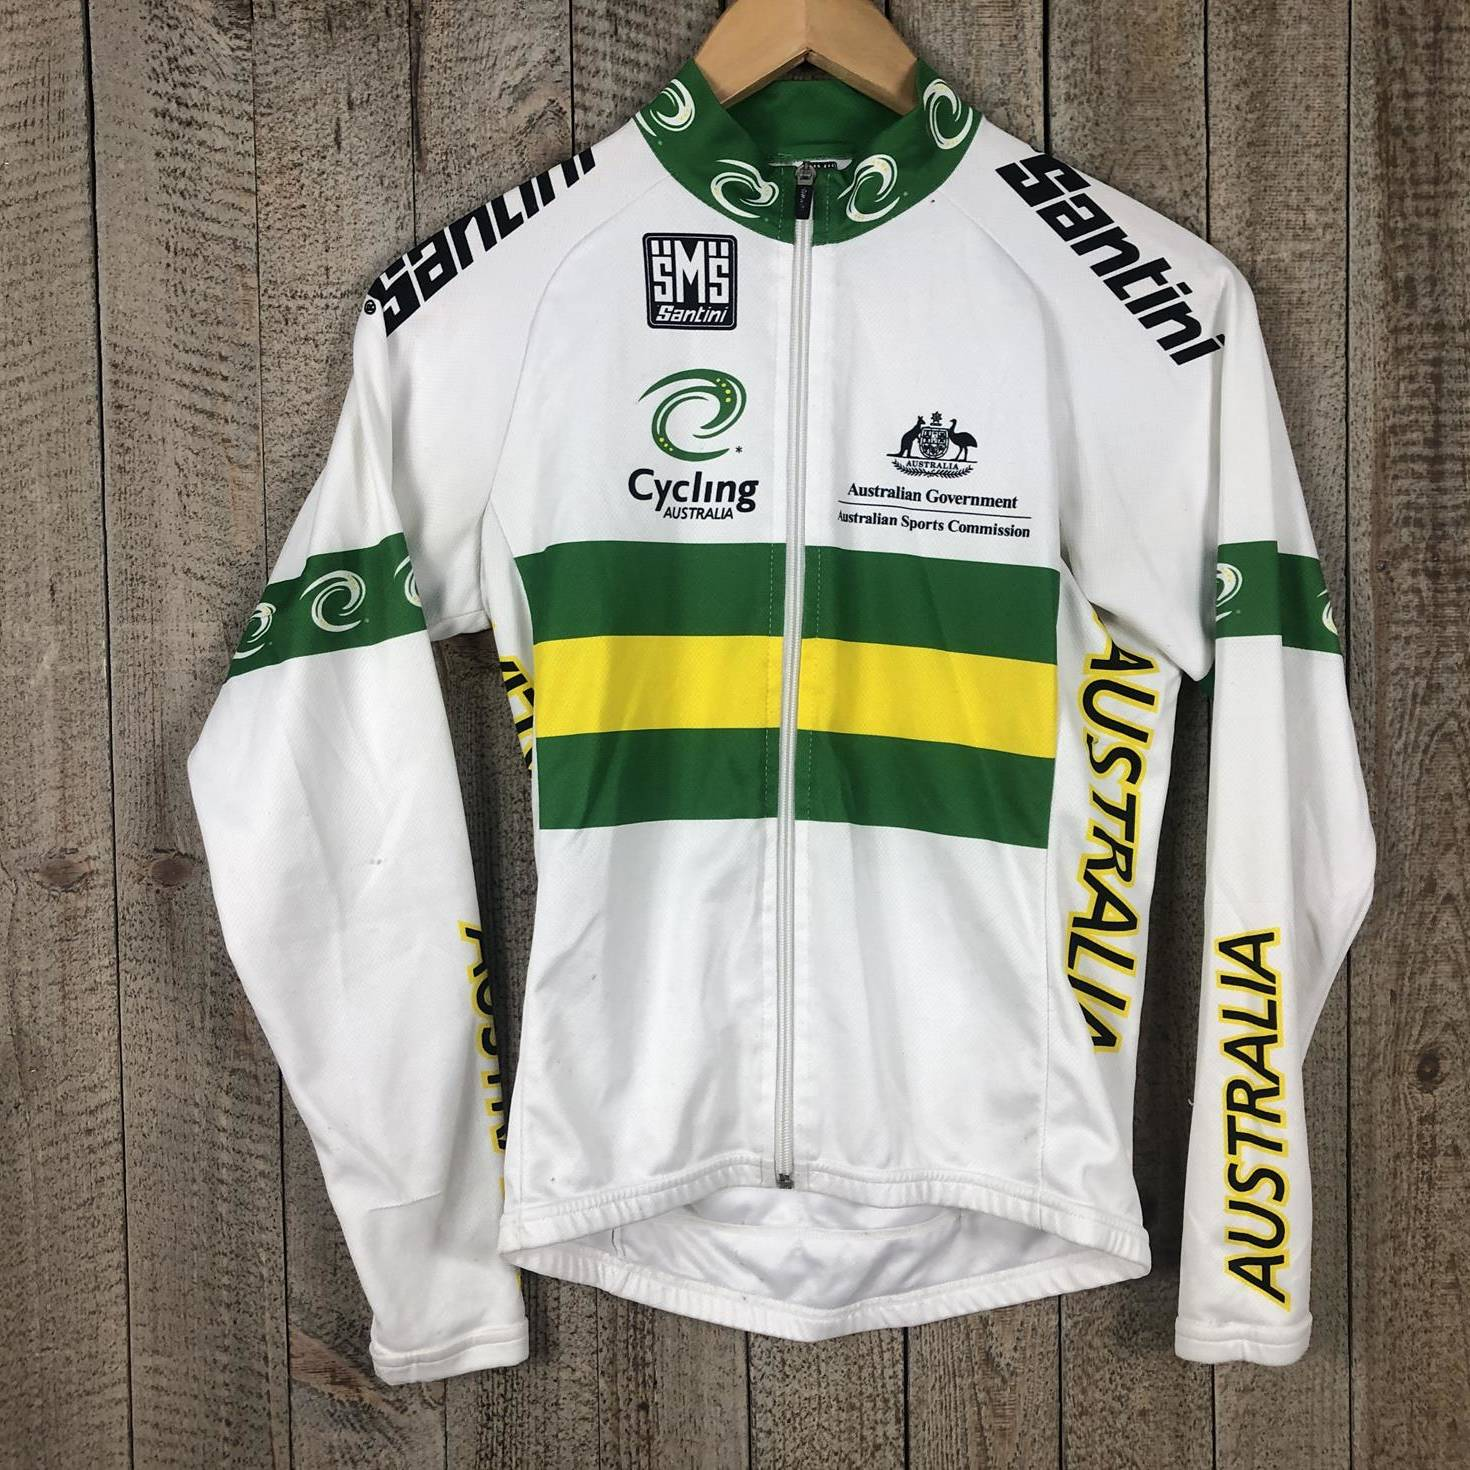 Long Sleeve Jersey - Australian Cycling Team 00003505 (1)